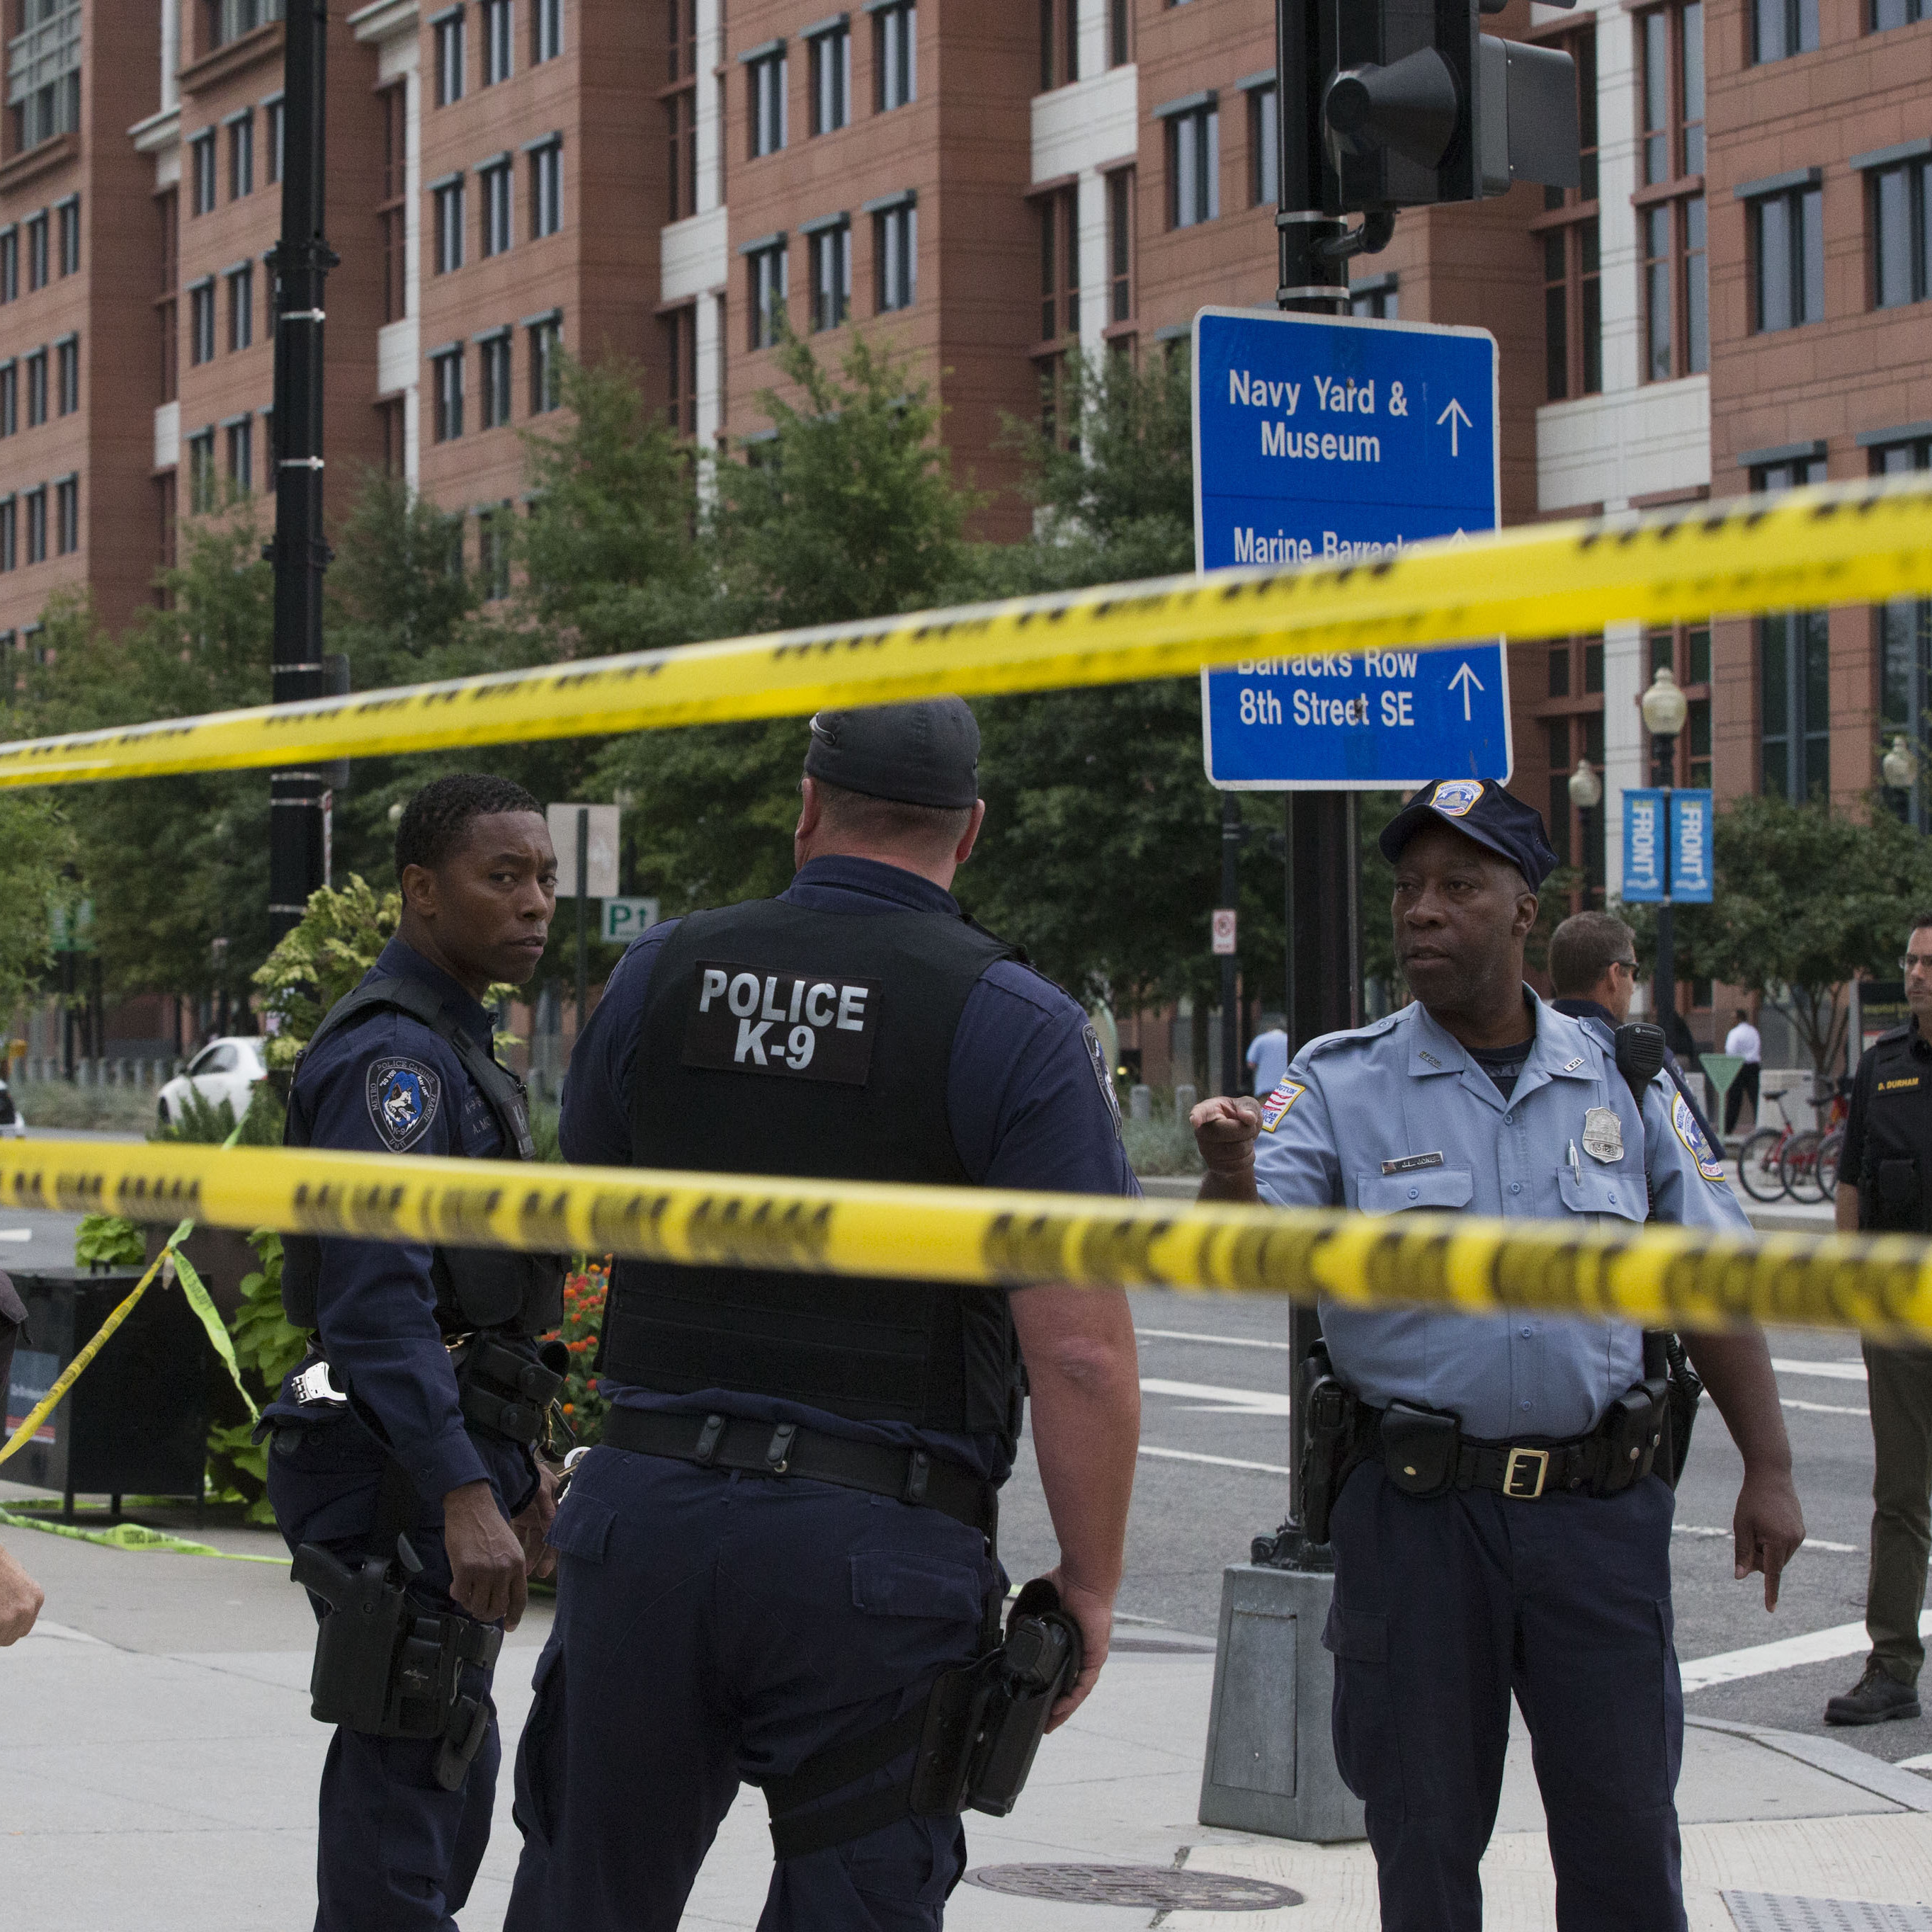 The scene outside the Washington Navy Yard shortly after Monday morning's shooting incident.